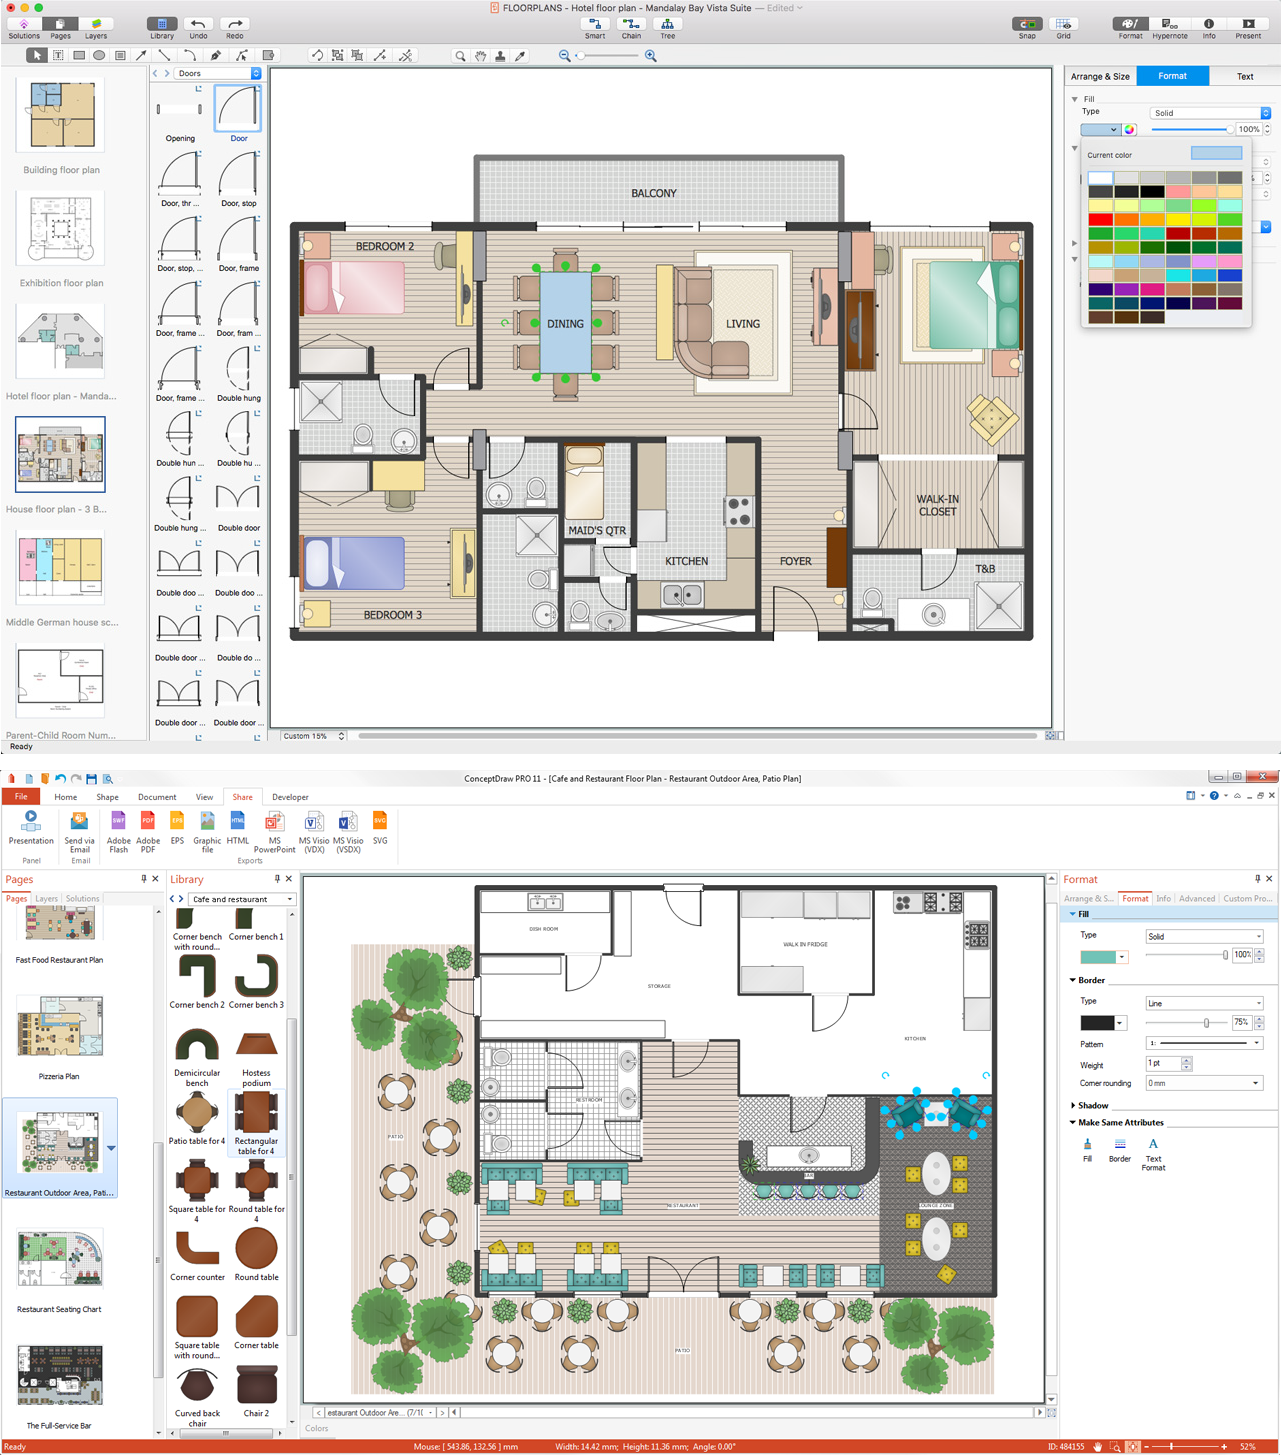 building plan examples | examples of home plan, floor plan, office